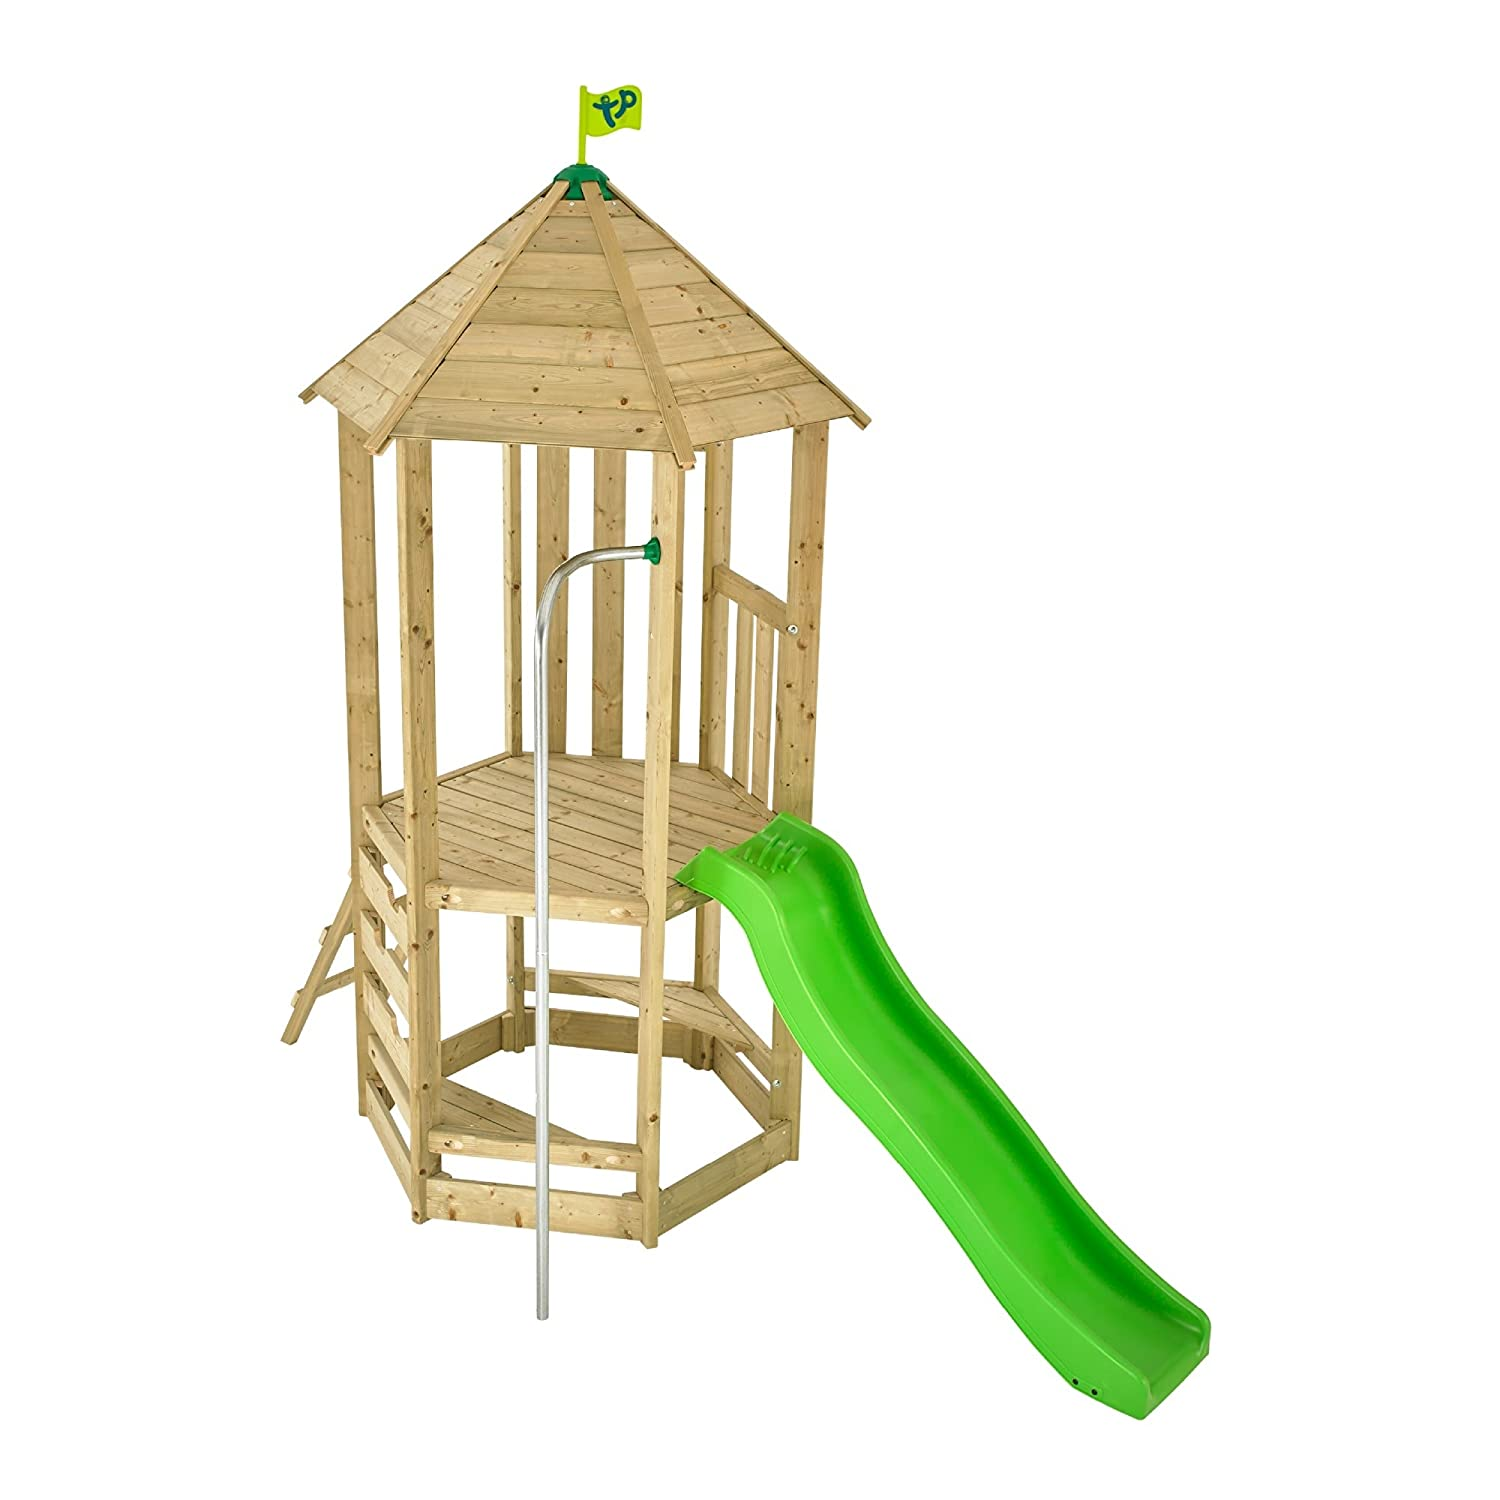 TP Castlewood Dover Wooden Climbing Frame and Wavy Slide TP Toys